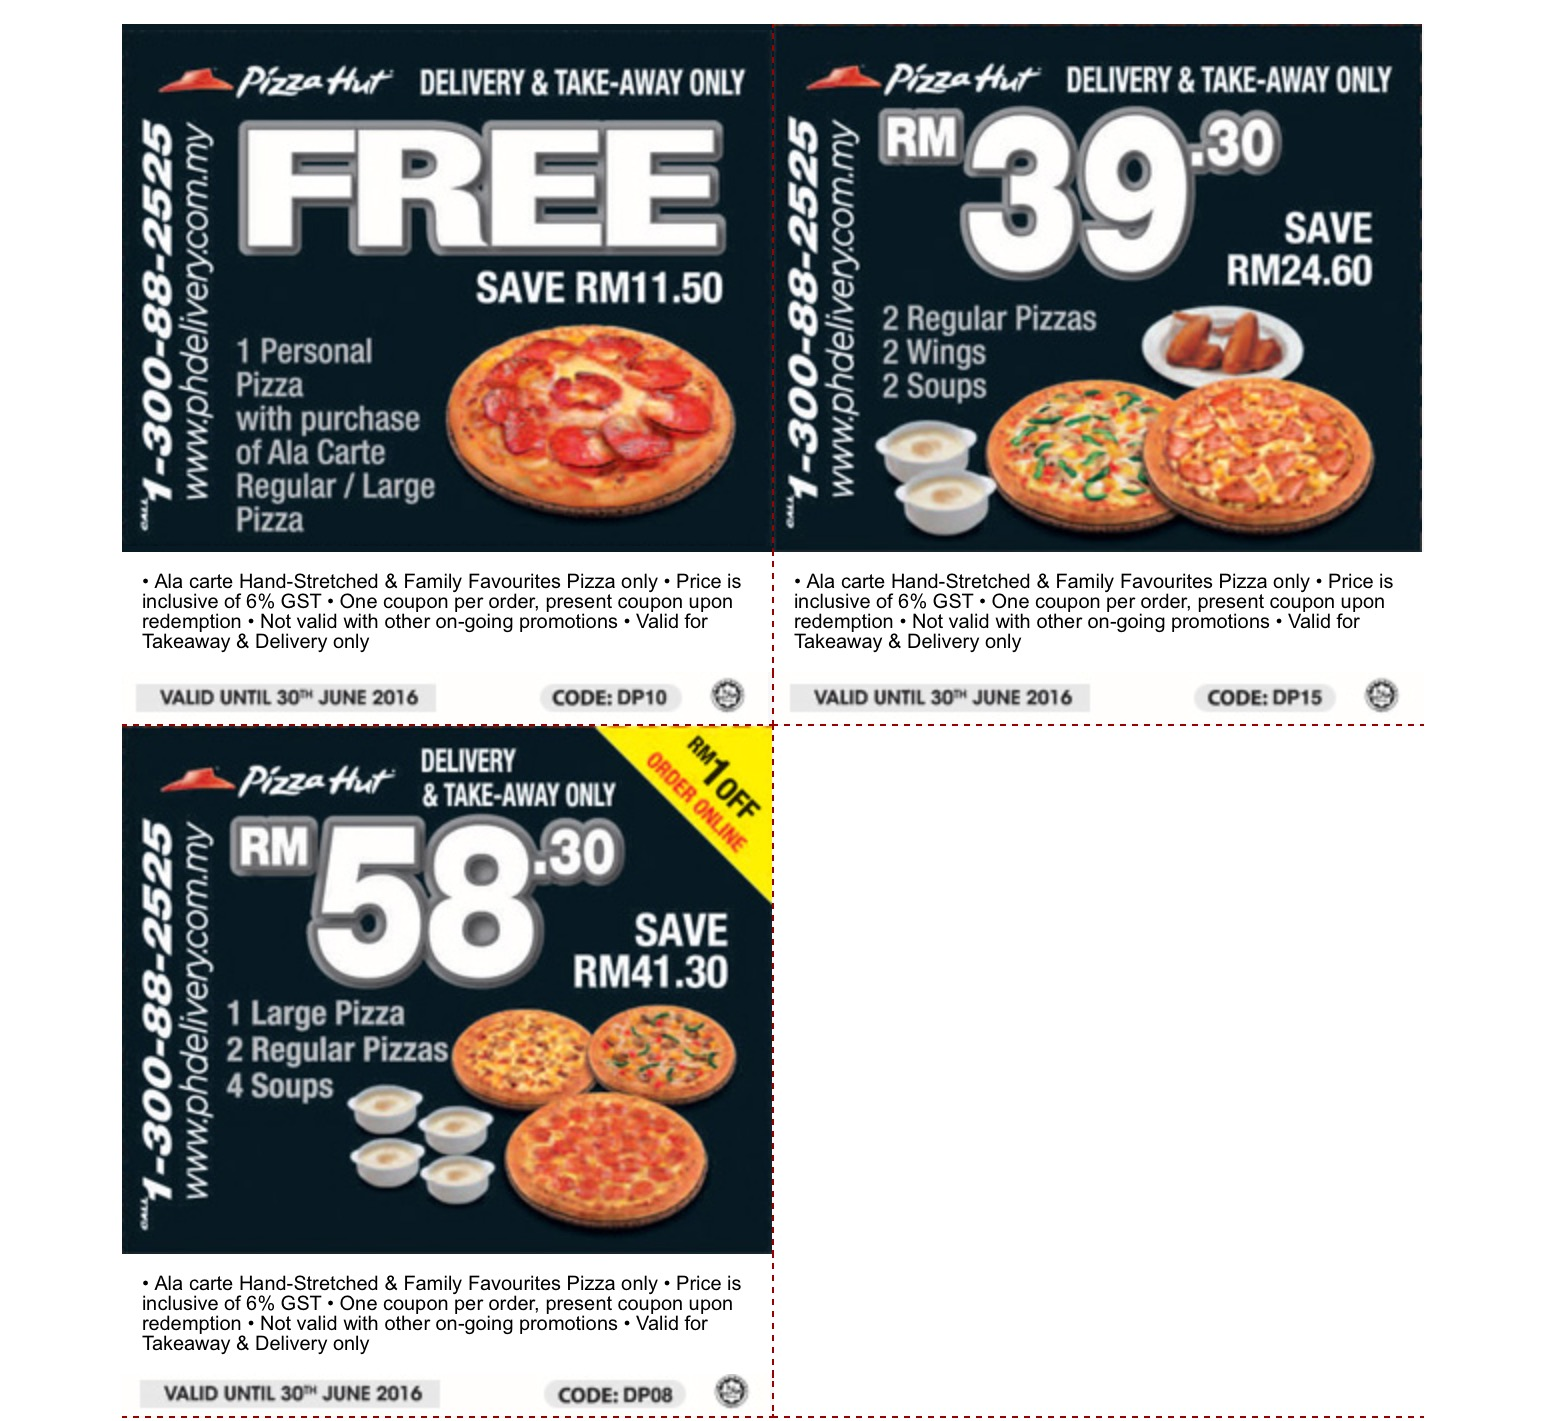 how to redeem free pizza code pizza hut